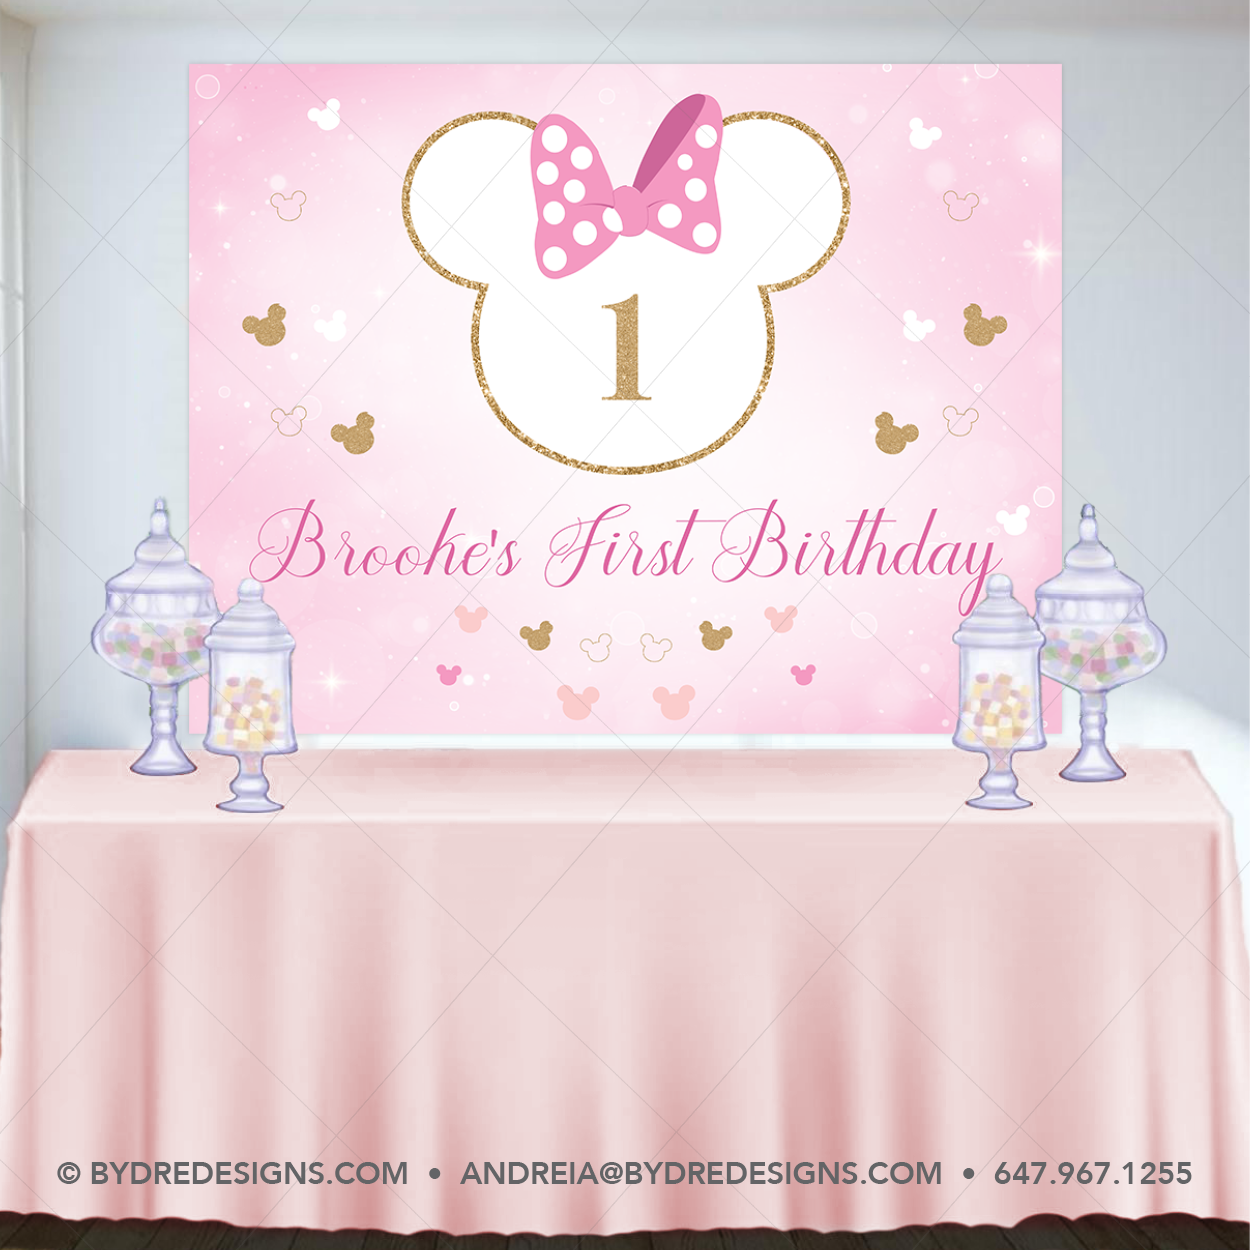 Minnie Mouse Backdrop Minnie Mouse Birthday Banner Minnie Mouse